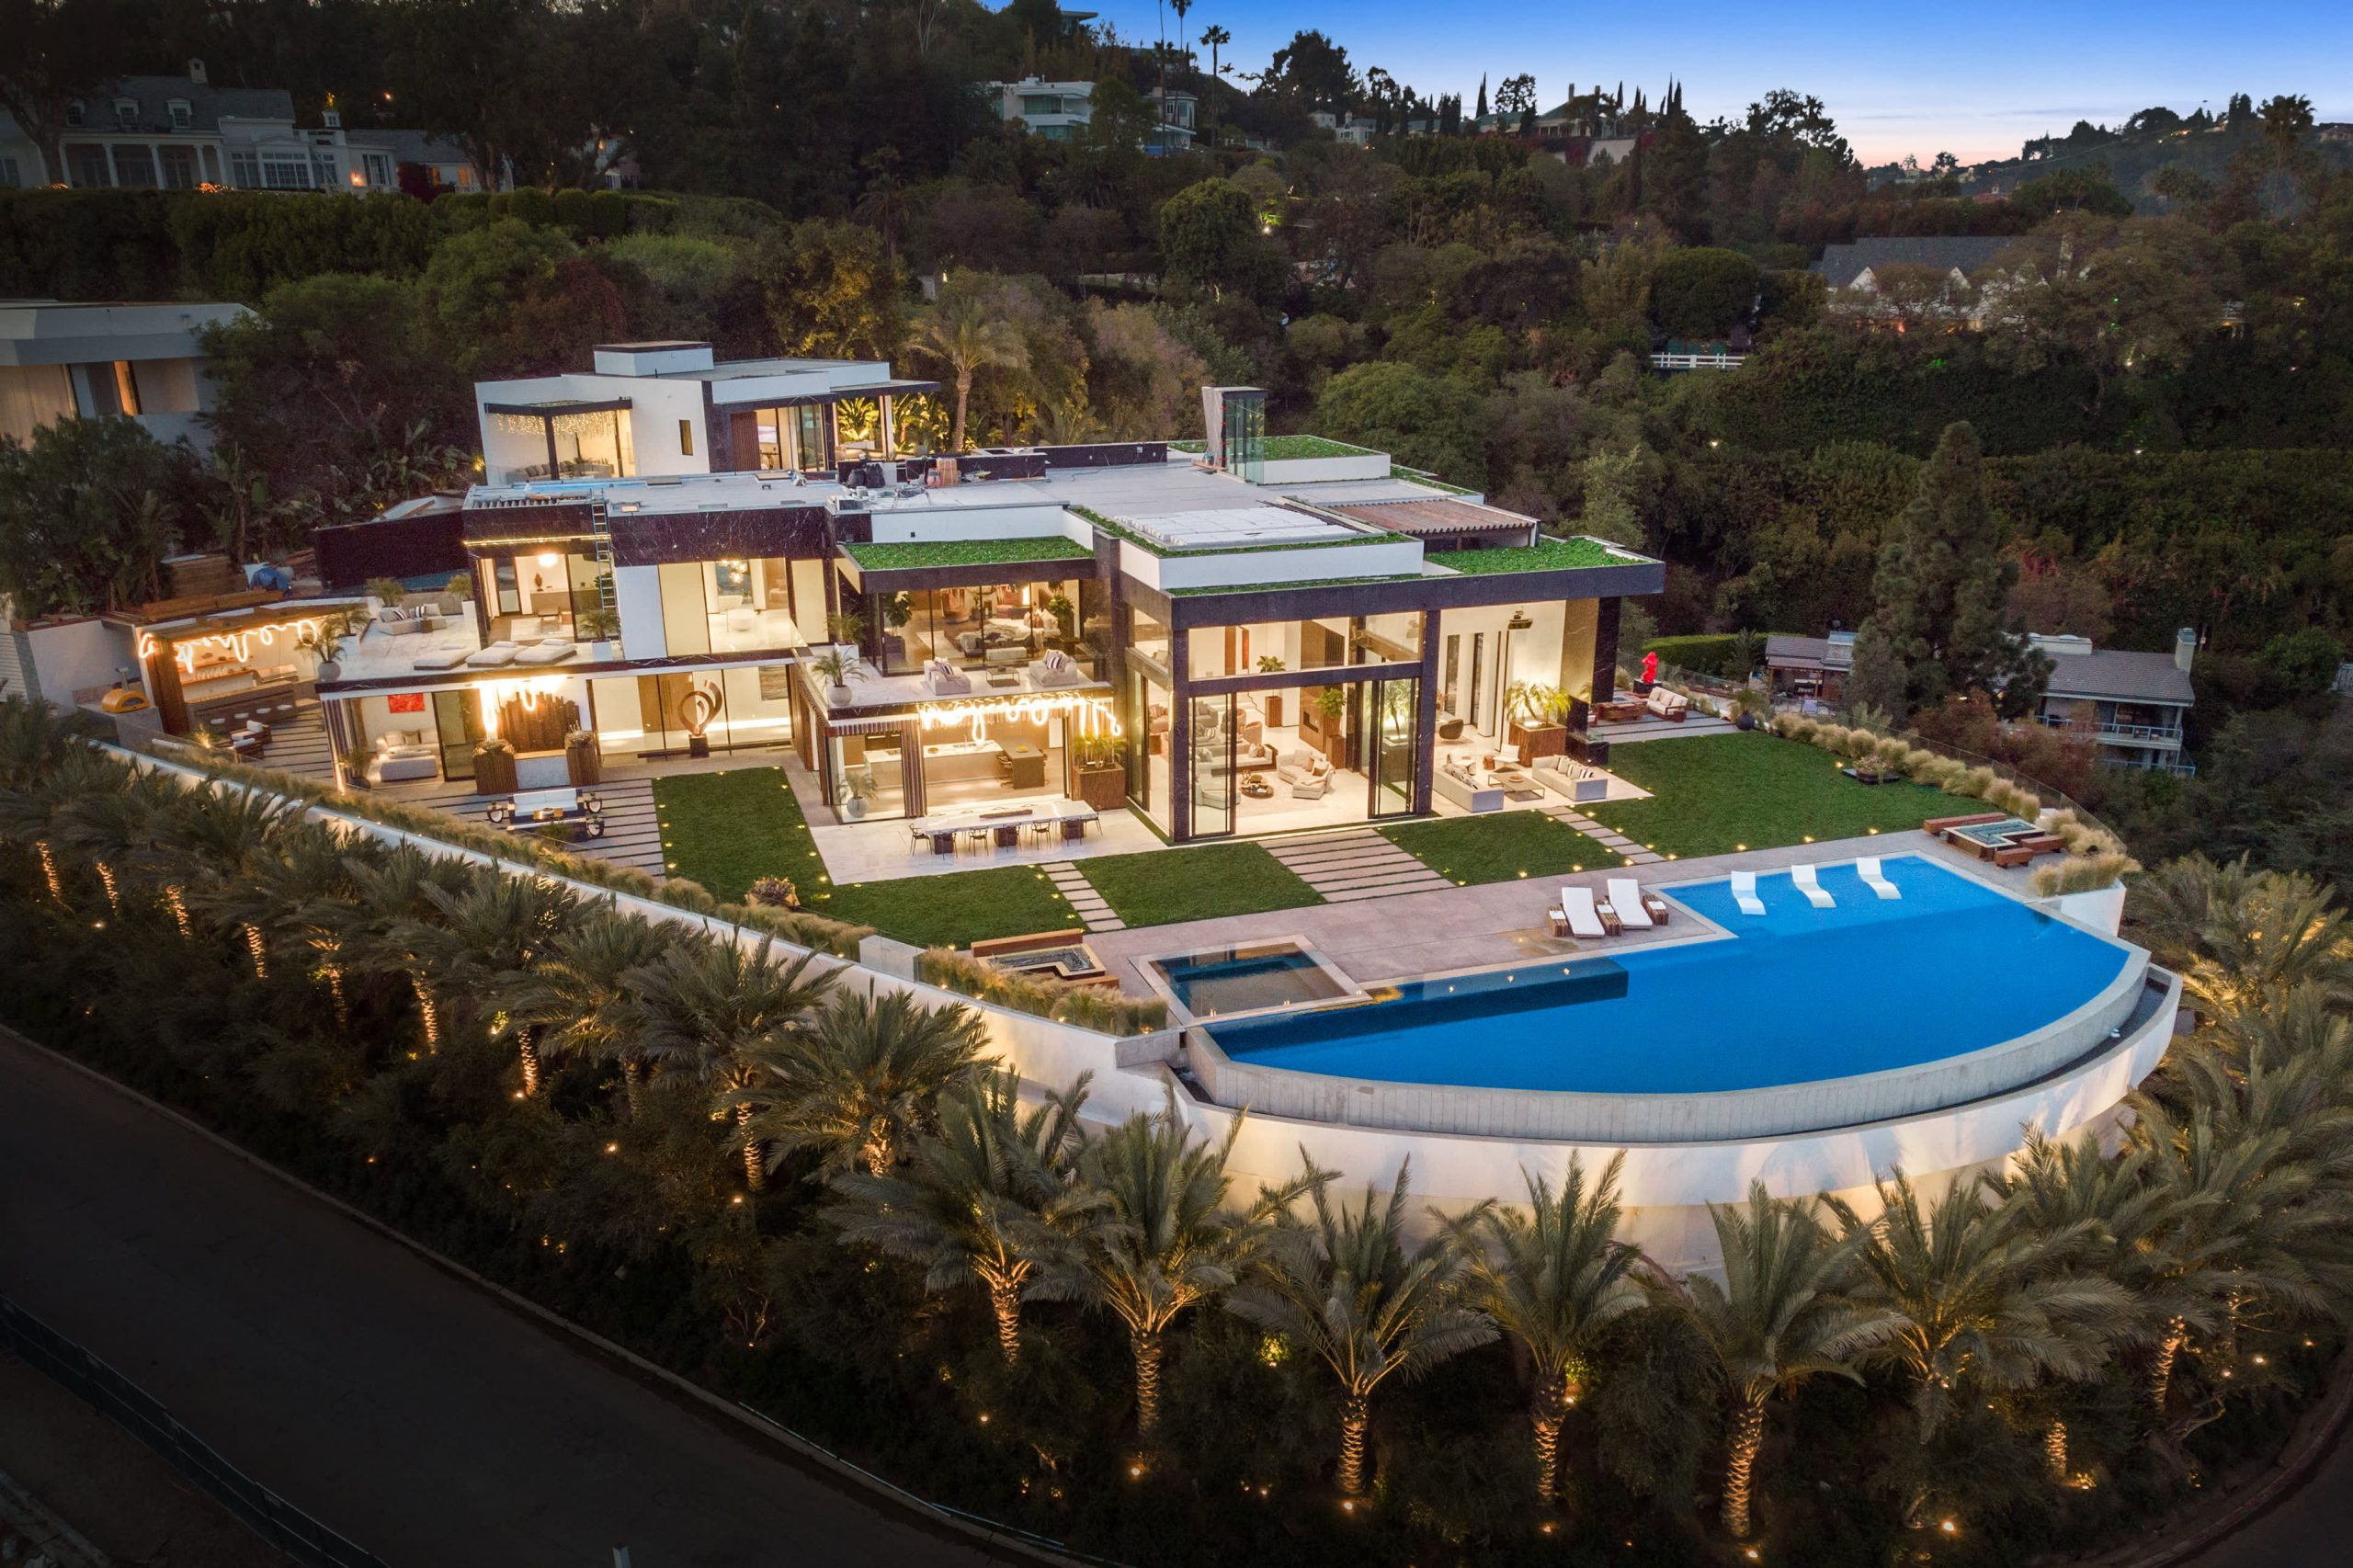 After a dramatic seven-year renovation, an $87 million mansion hits the market in Bel-Air